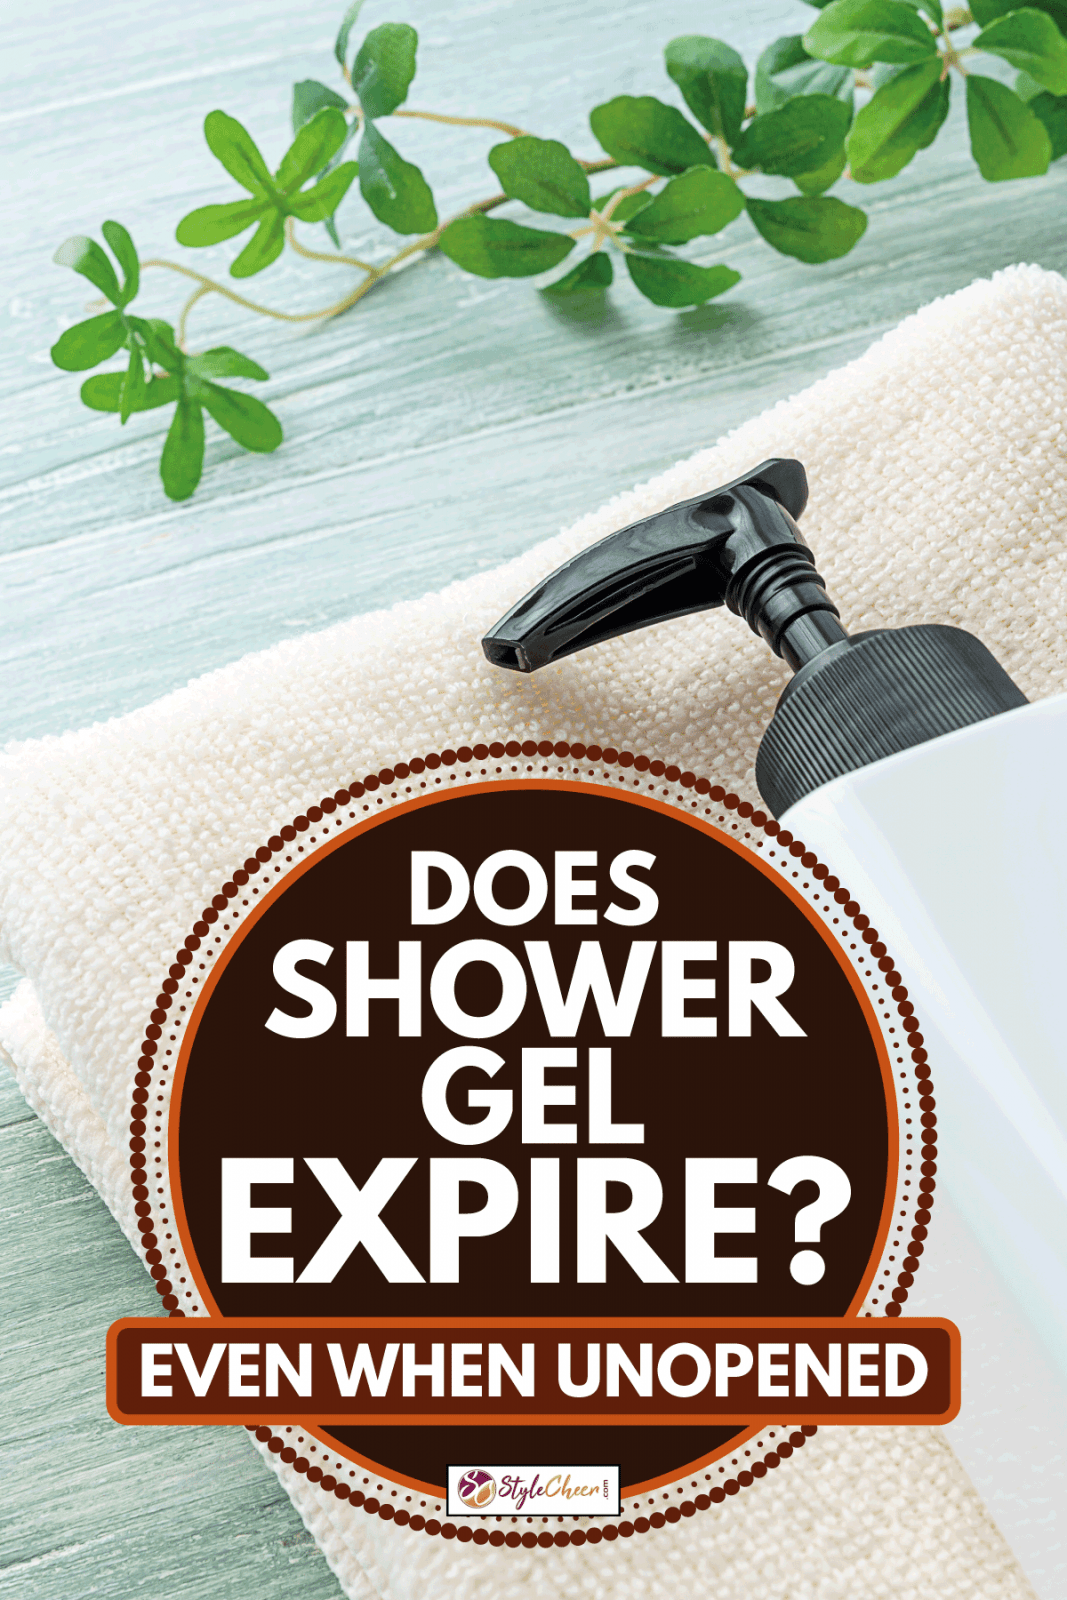 Liquid soap bottle and towel on wooden background, Does Shower Gel Expire? (Even When Unopened)